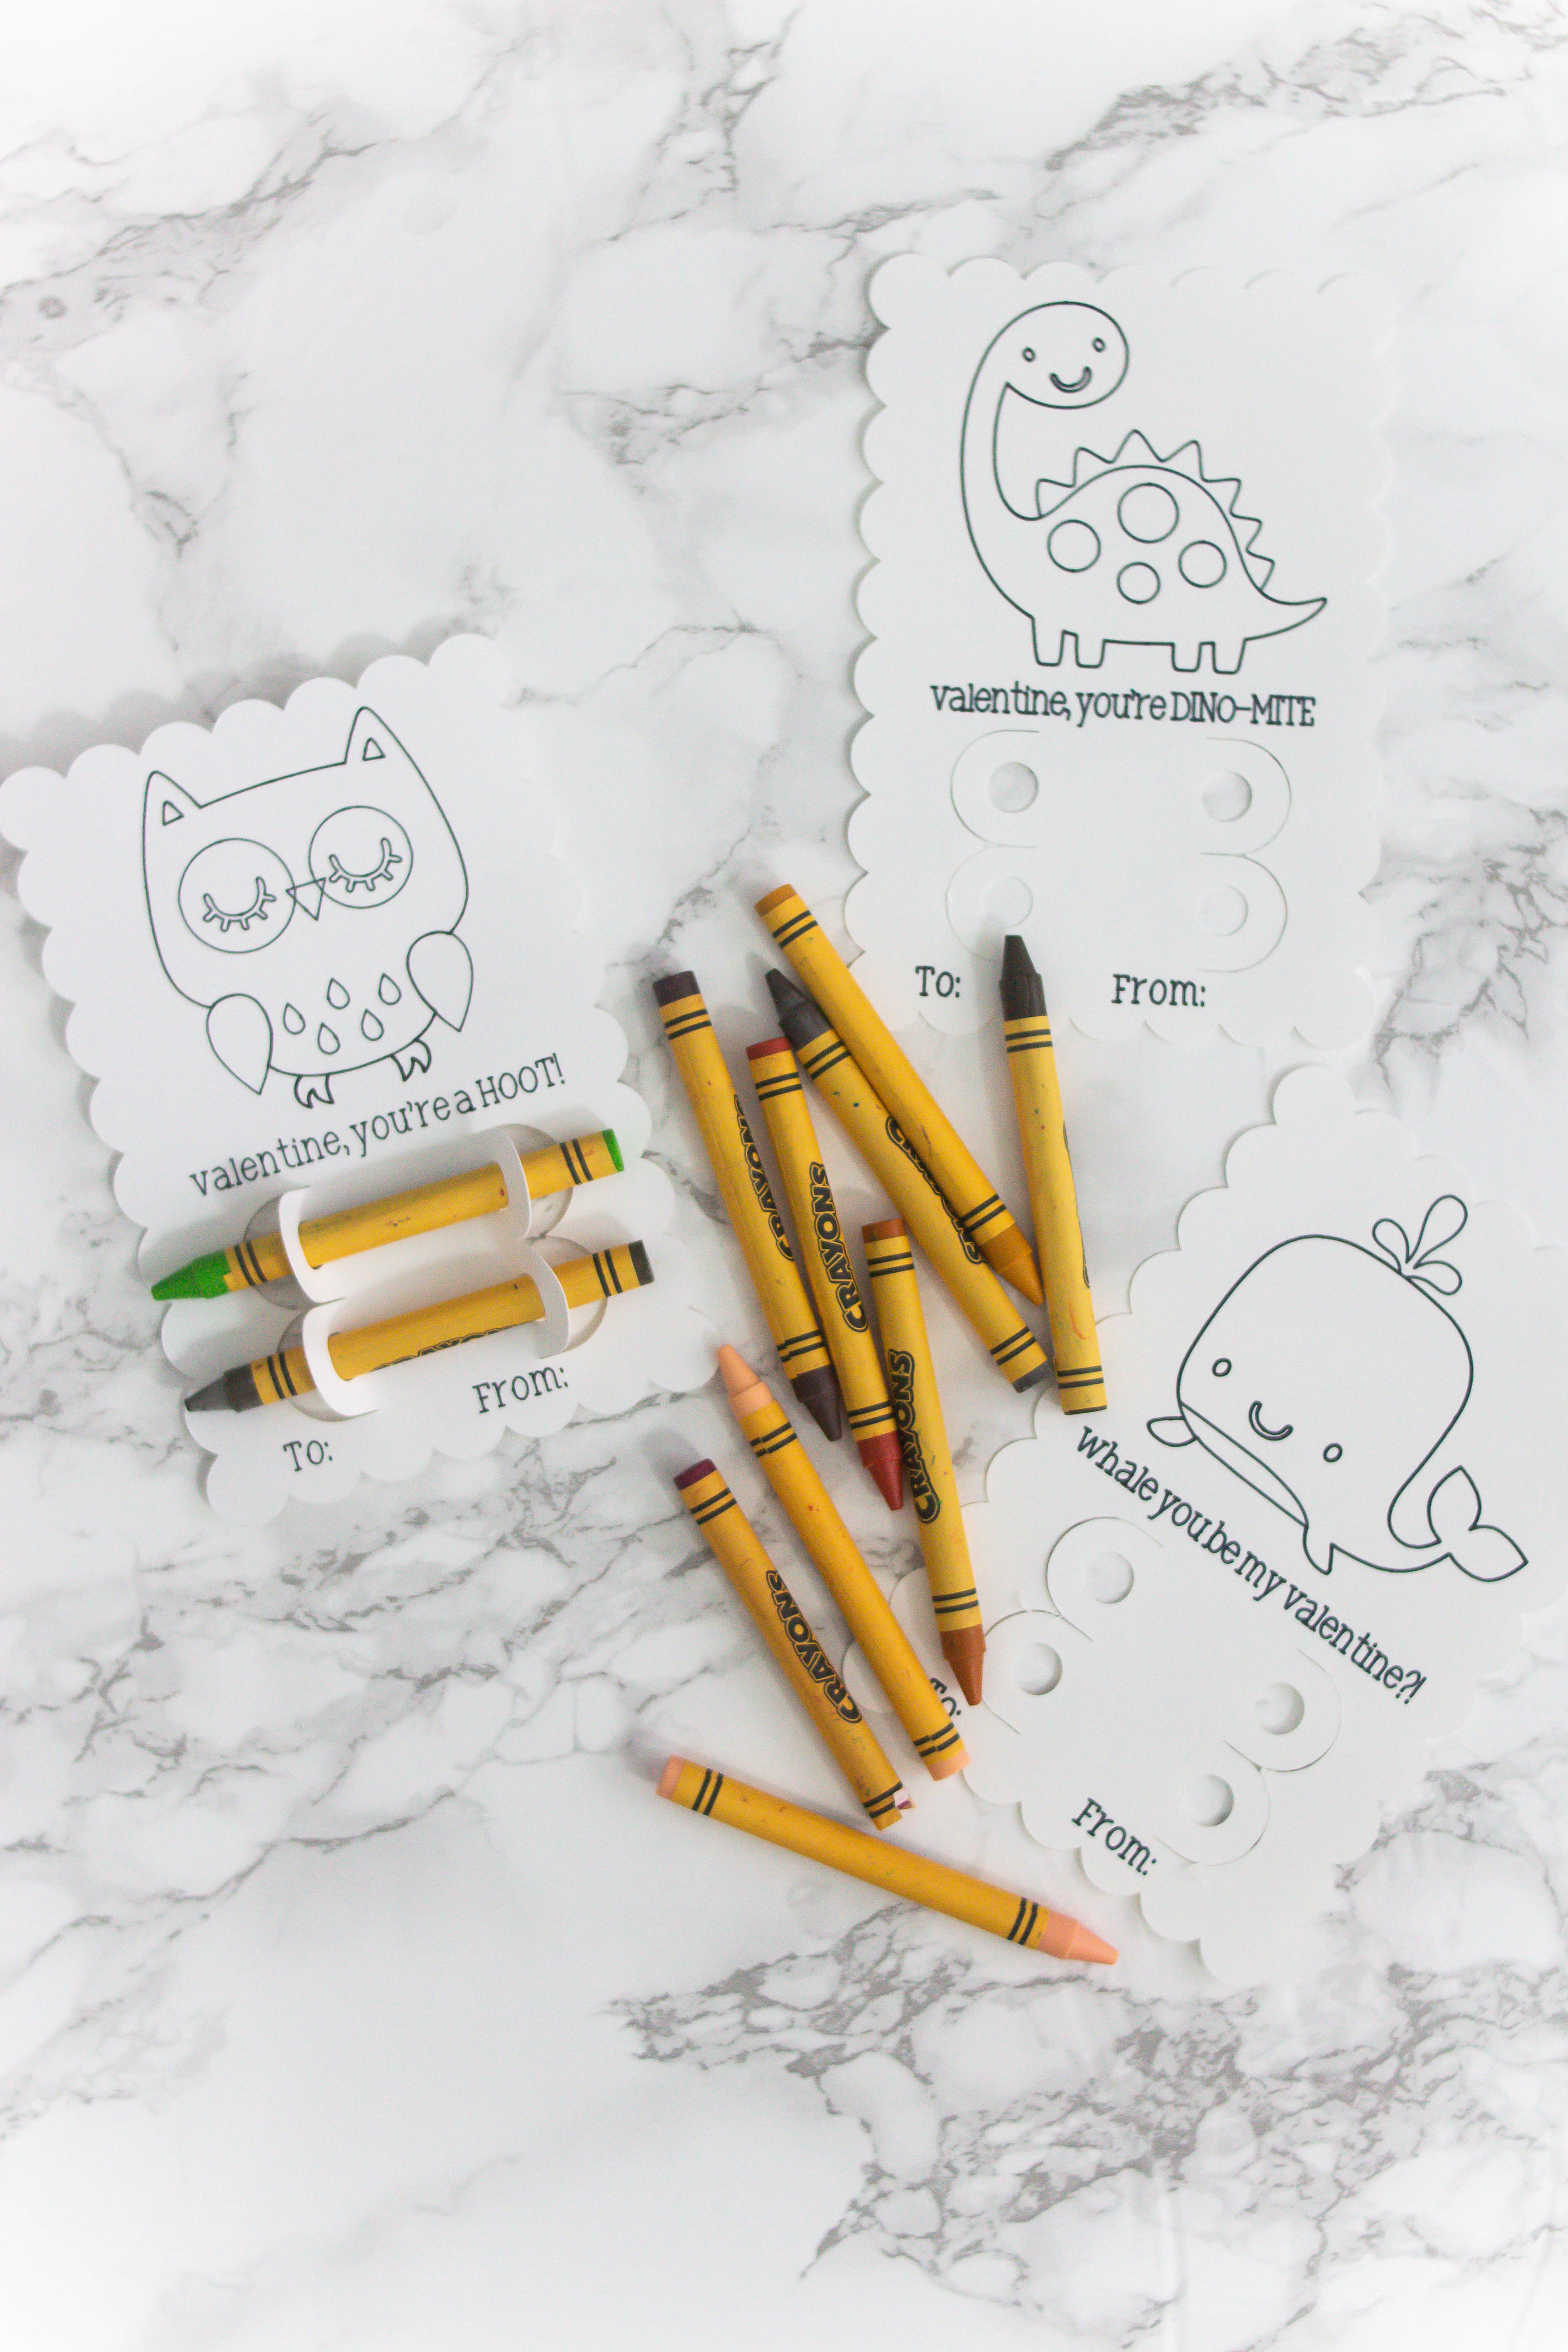 white valentines with owls dinosaurs and whales with crayons to color them in on a marble countertop